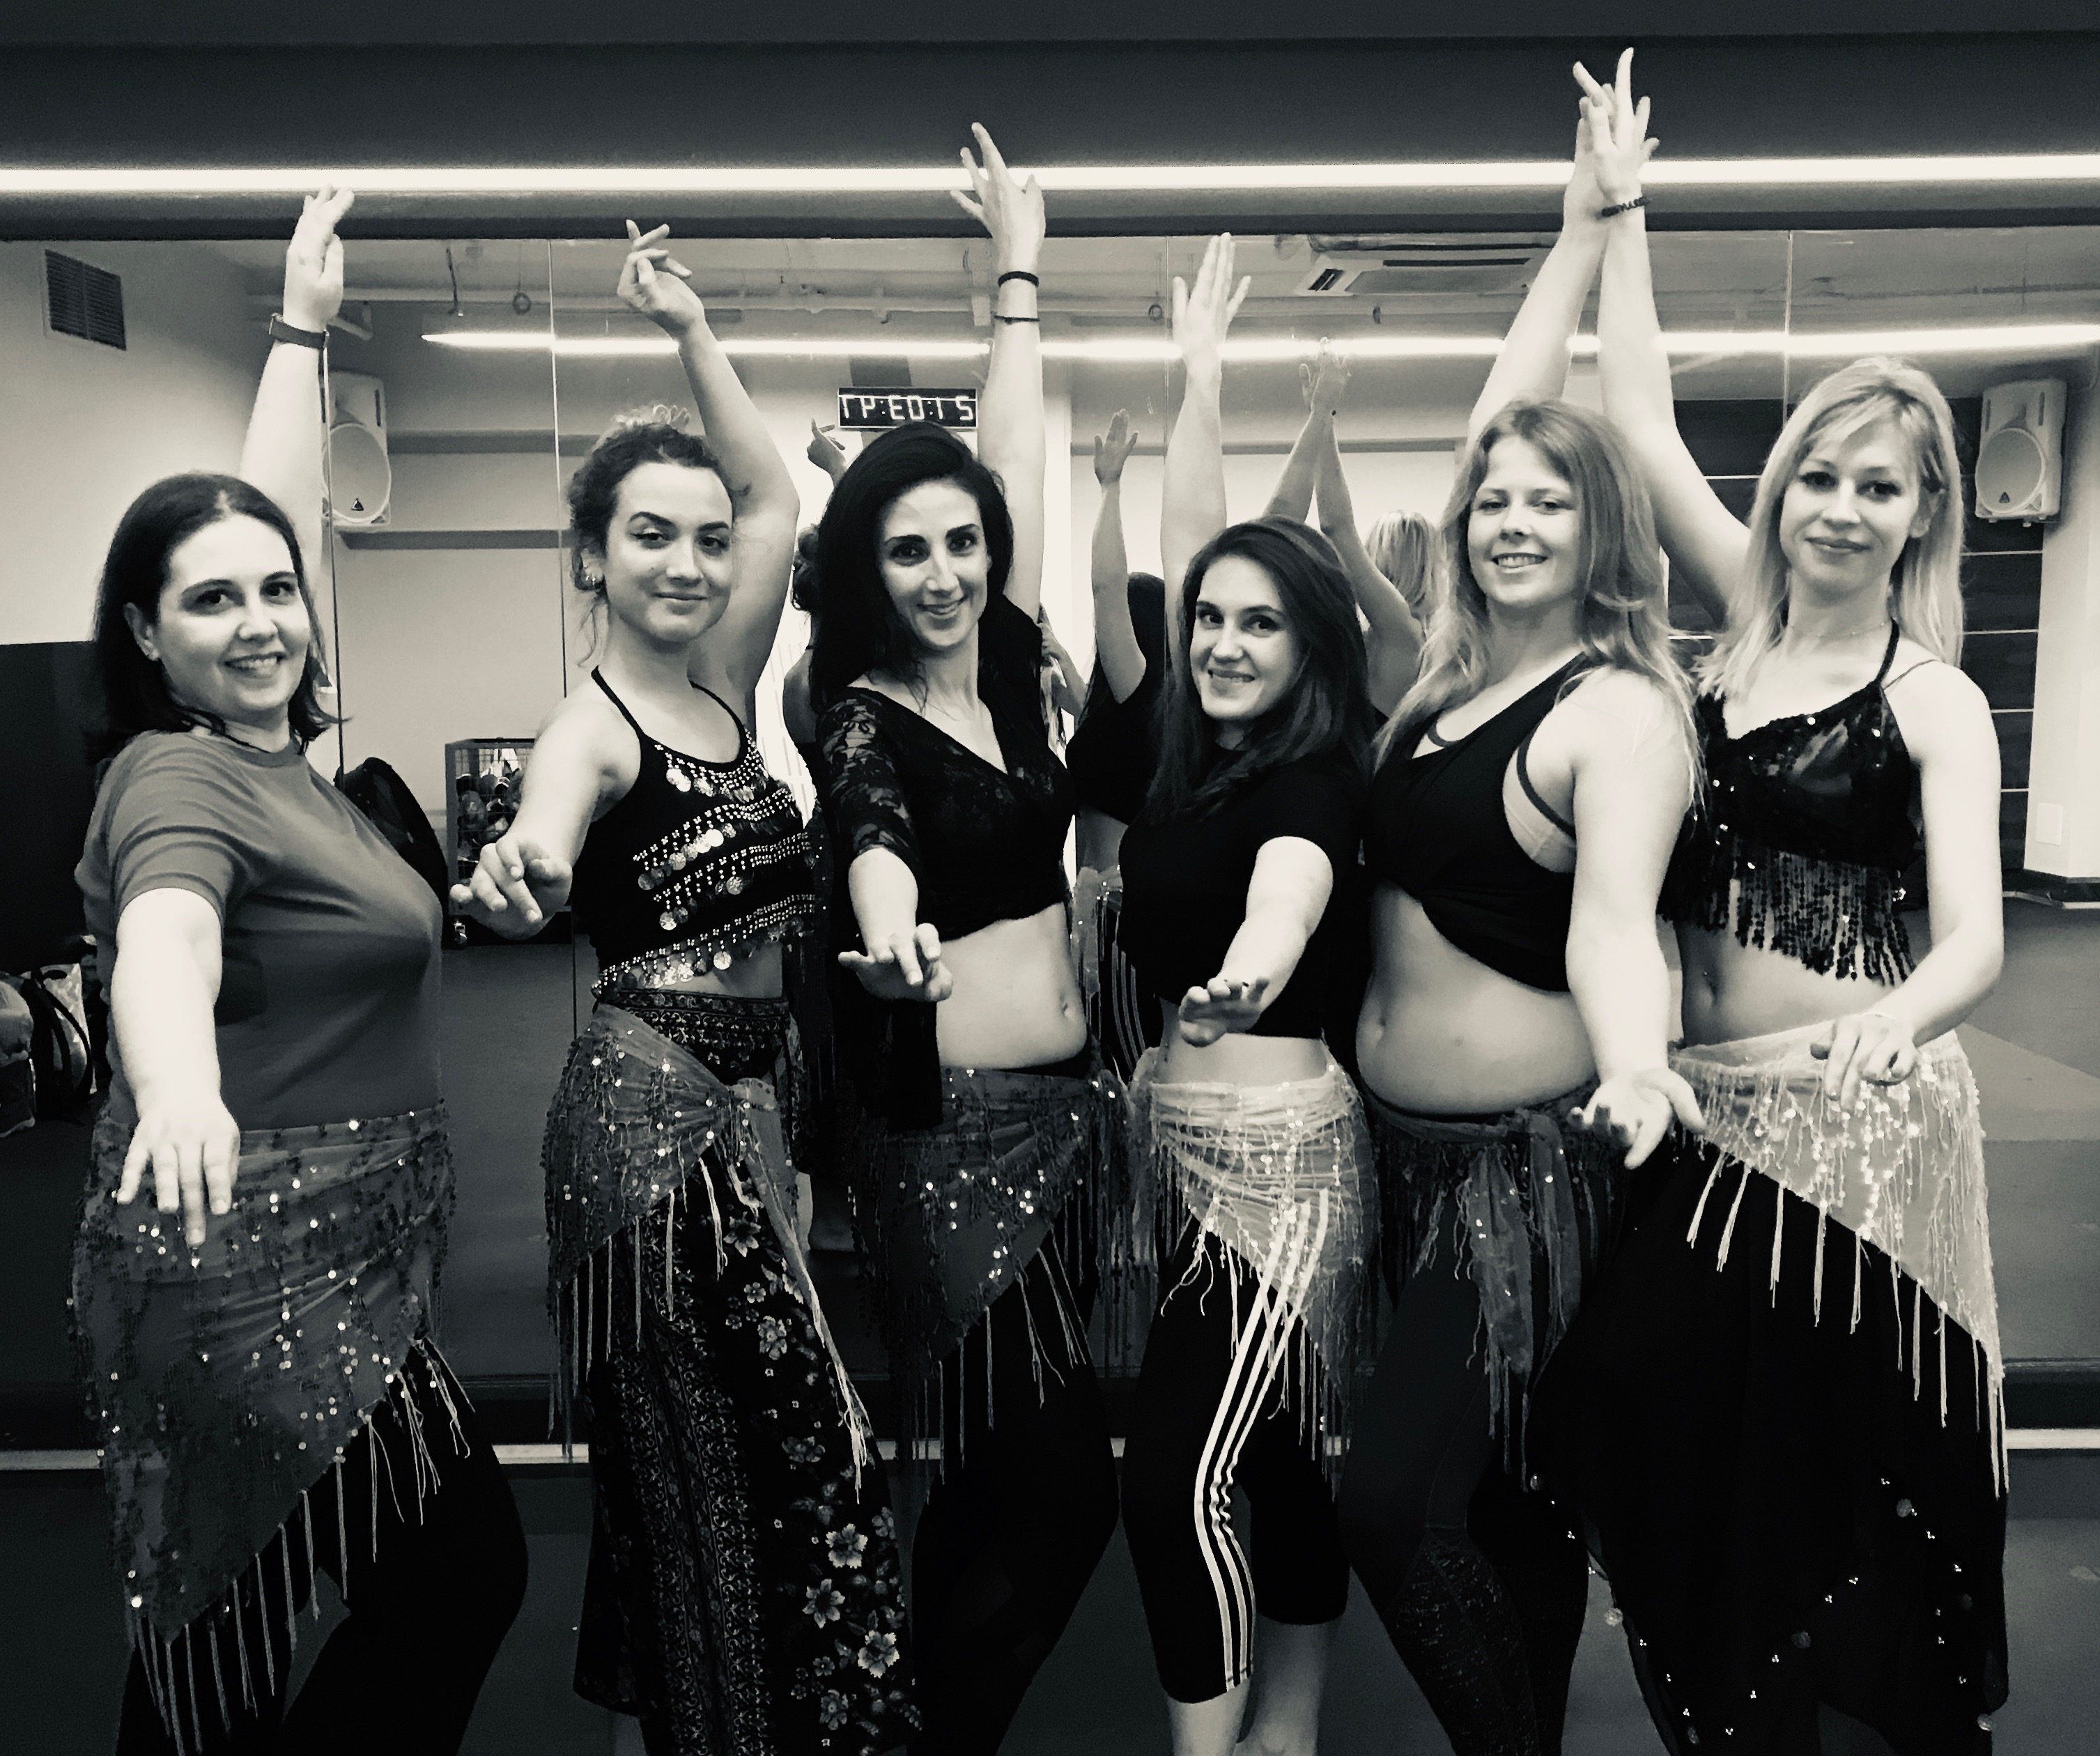 Katie's Beginner and Improvers Belly Dance Classes